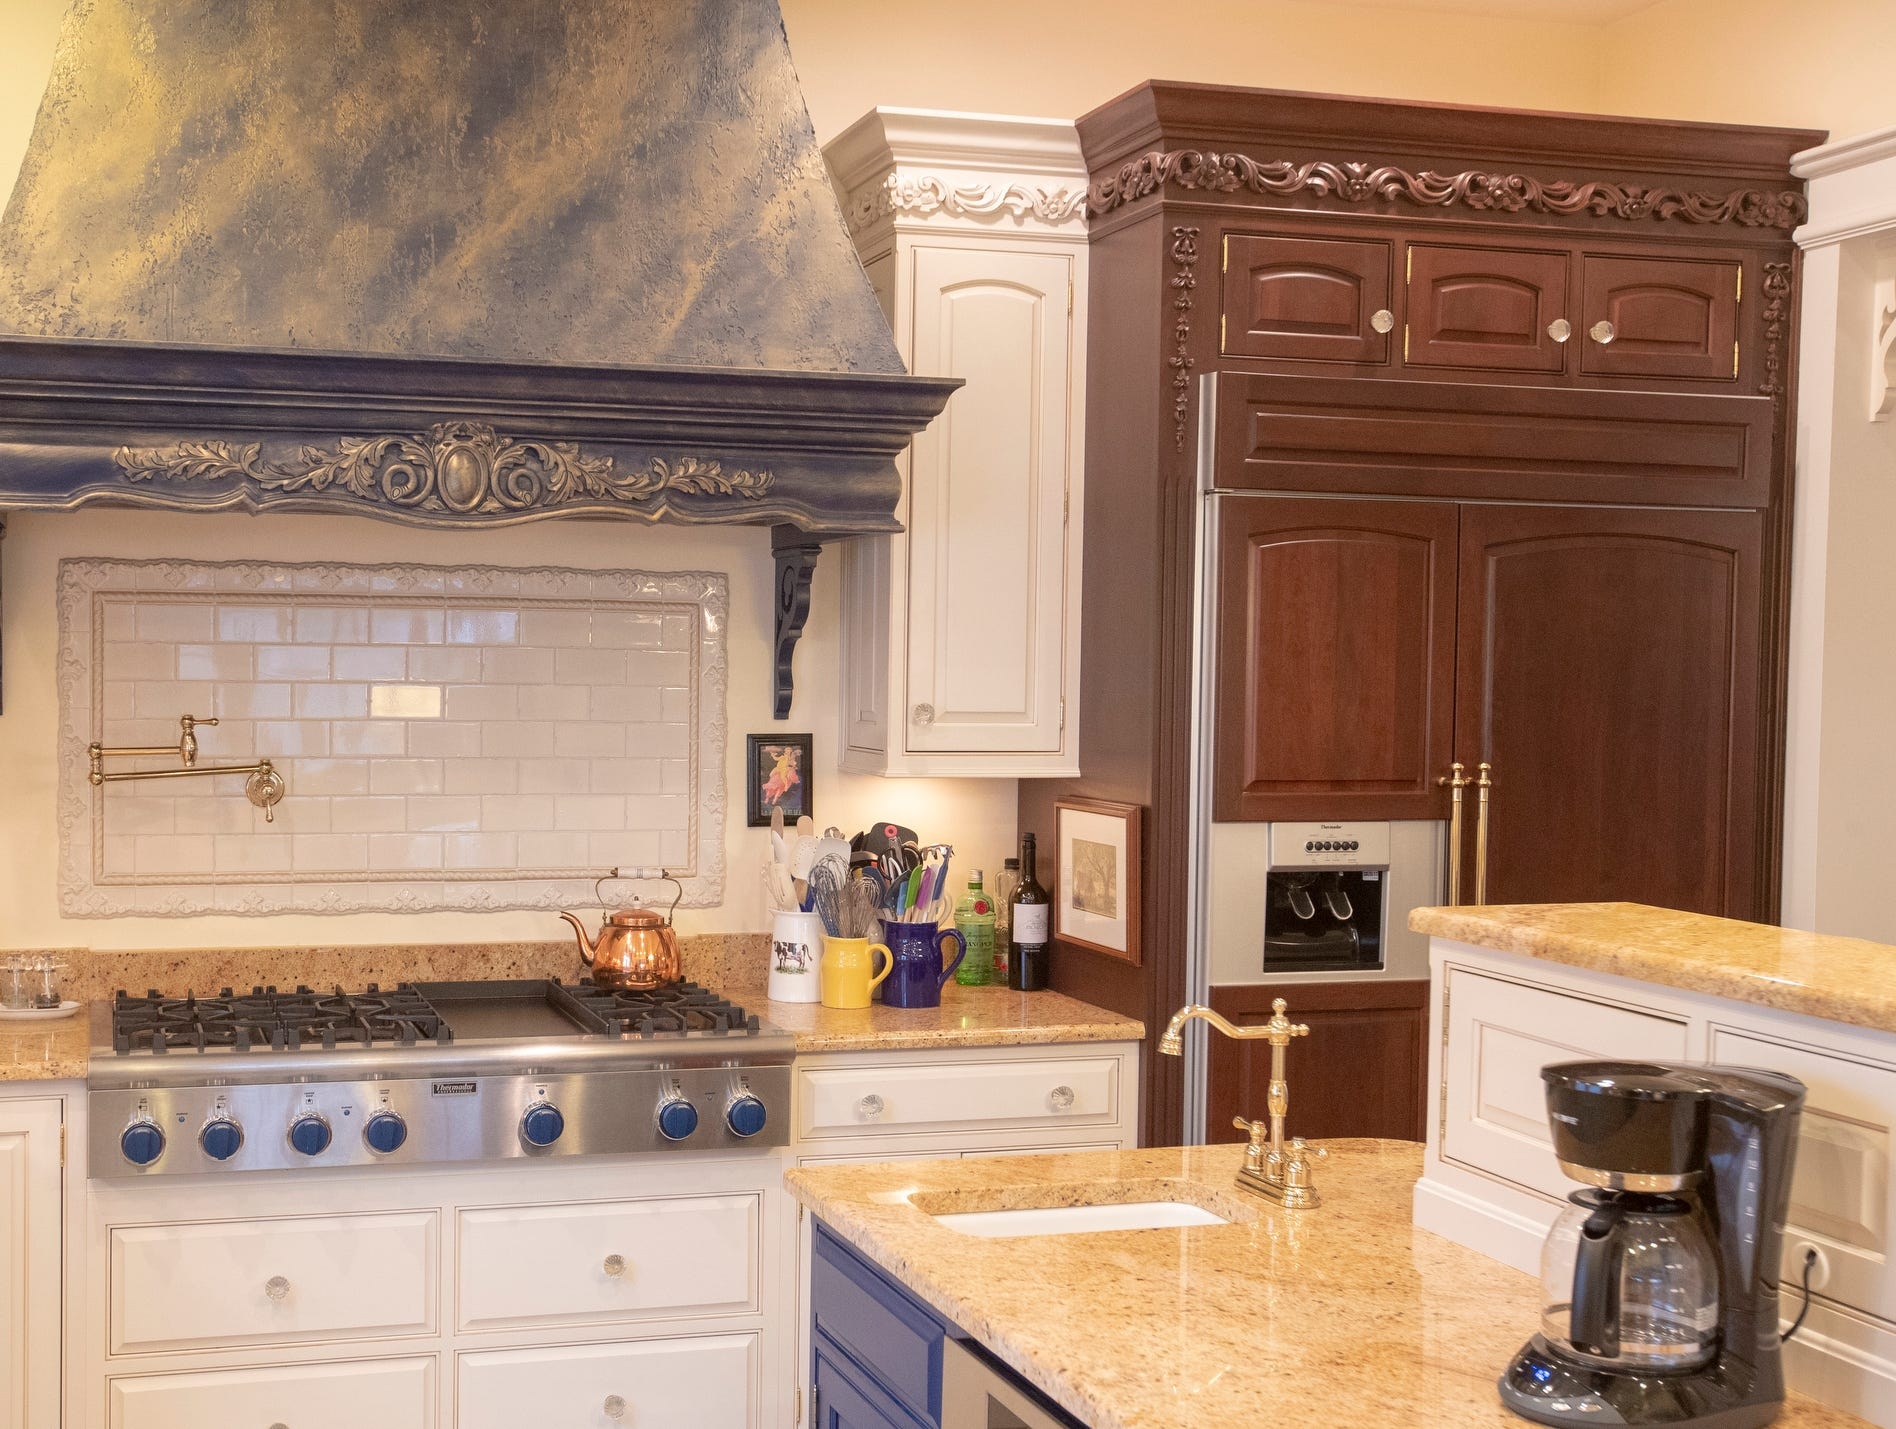 The oven and refrigerator area inside a thirteen-year-old Victorian home in the Village of West Clay, Carmel, March 20, 2019. The house includes 16 rooms with five bedrooms, 8,348 square feet, and is listed at $1.275 million.